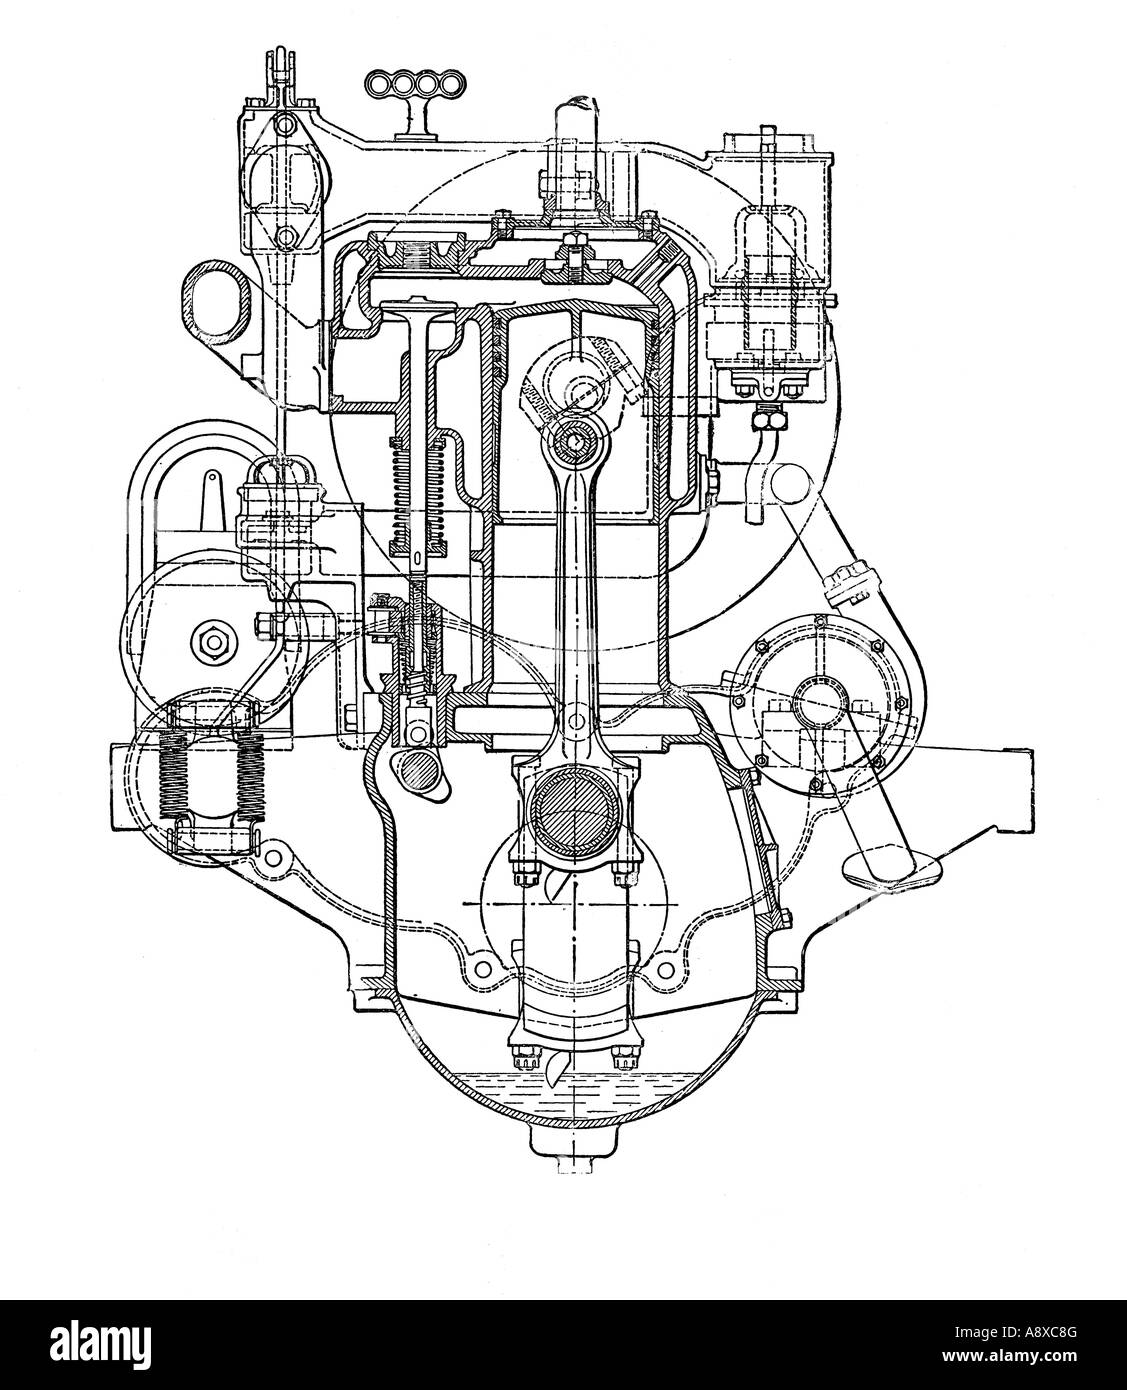 Small Gasoline Engine Diagram Wiring Library. Cross Section Diagram Of Siddeley Four Cylinder Petrol Engine Stock. Wiring. 212cc Ohv Engine Diagram At Scoala.co